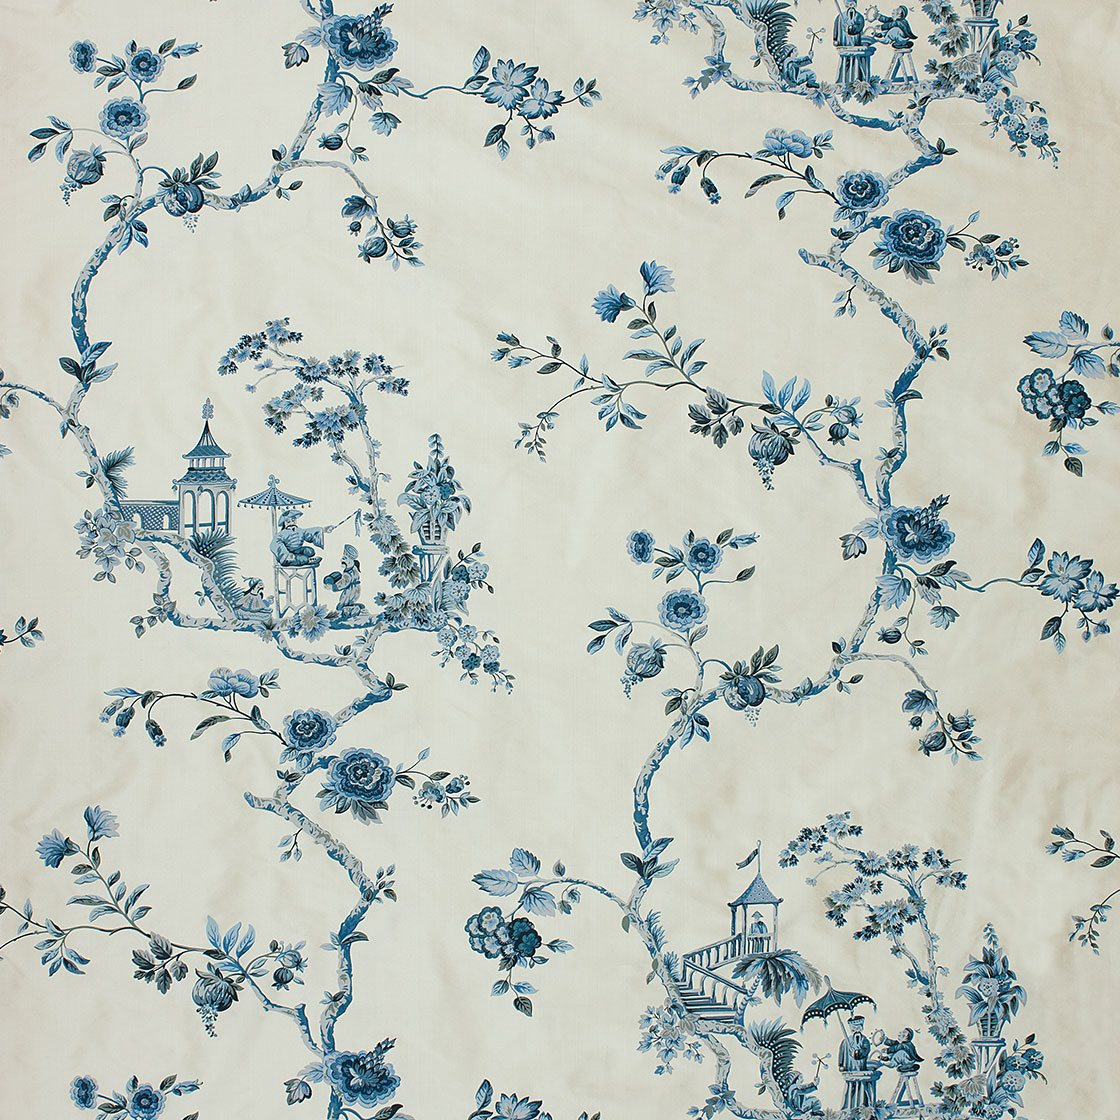 Cathay Printed Silk - Ming Blue - Beaumont & Fletcher - Beaumont & Fletcher